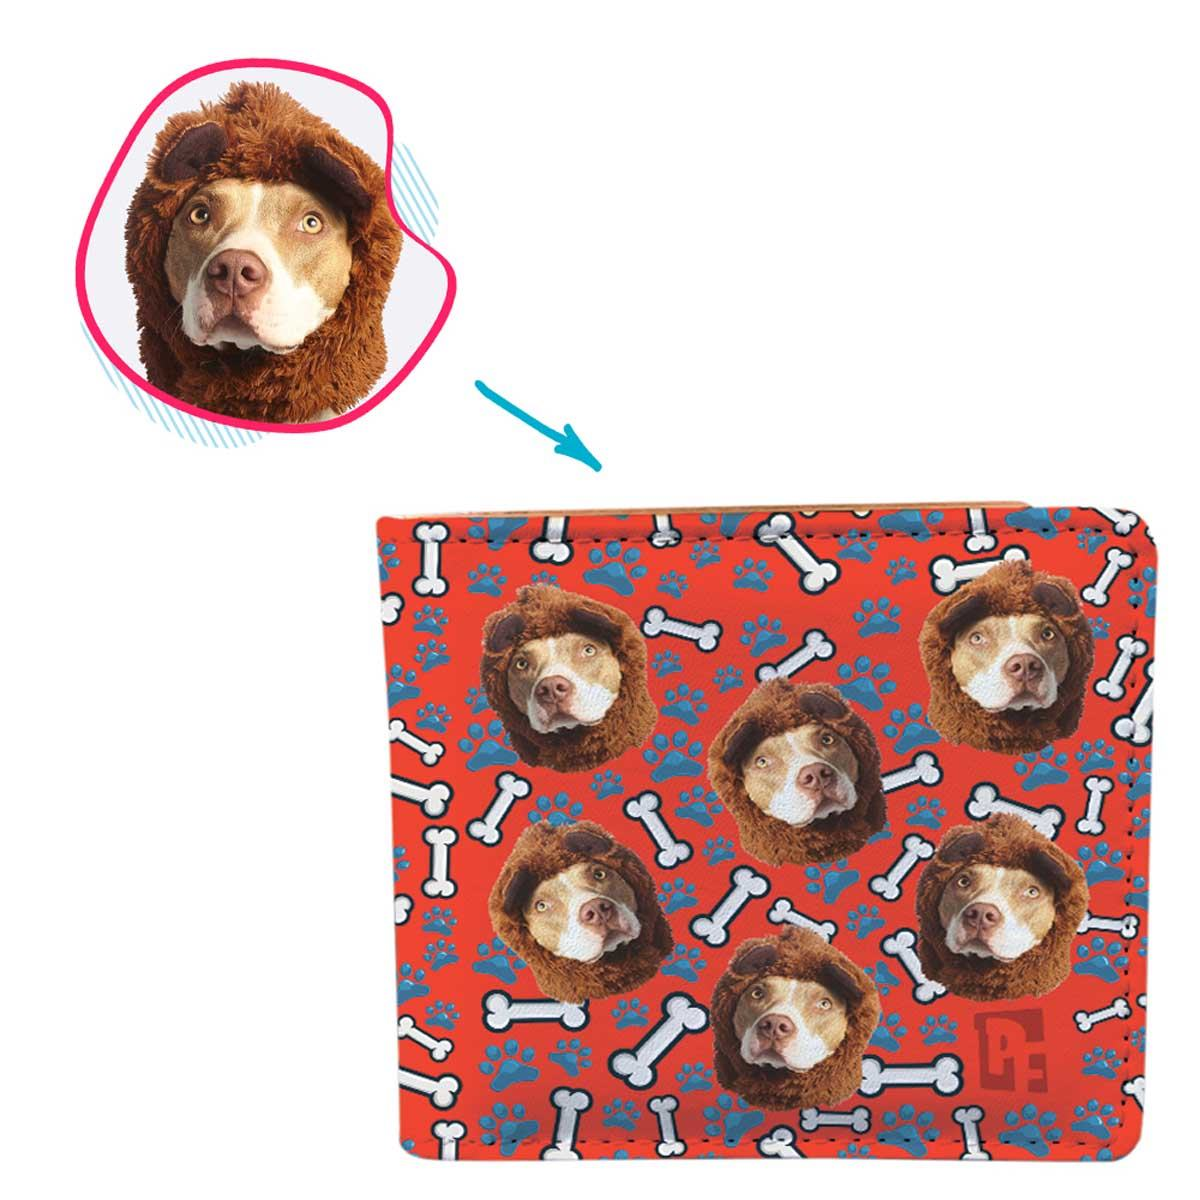 red Dog wallet personalized with photo of face printed on it